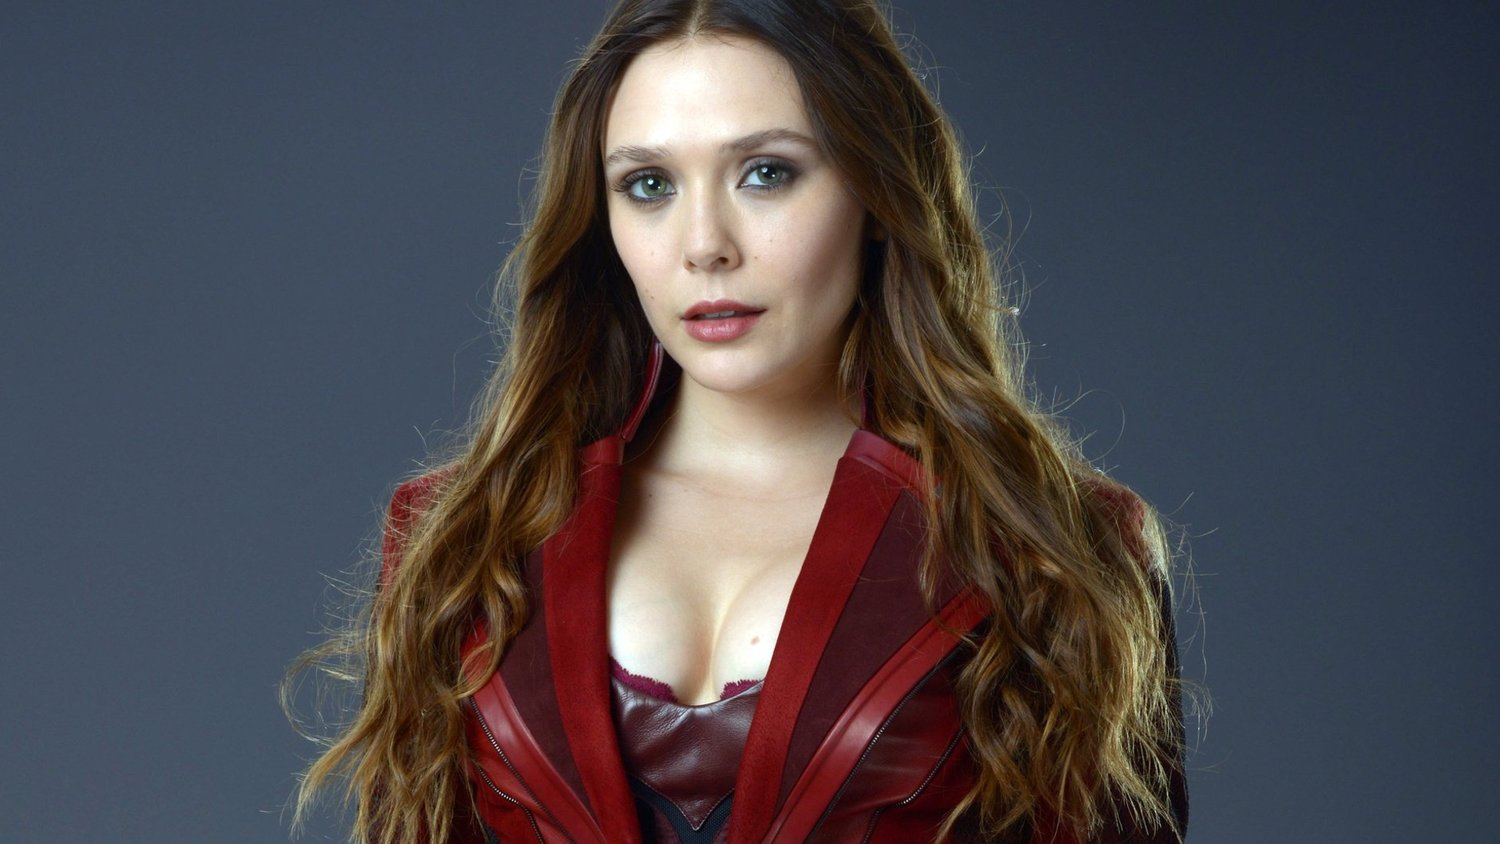 Detailed Look at Scarlet Witch's AVENGERS: AGE OF ULTRON